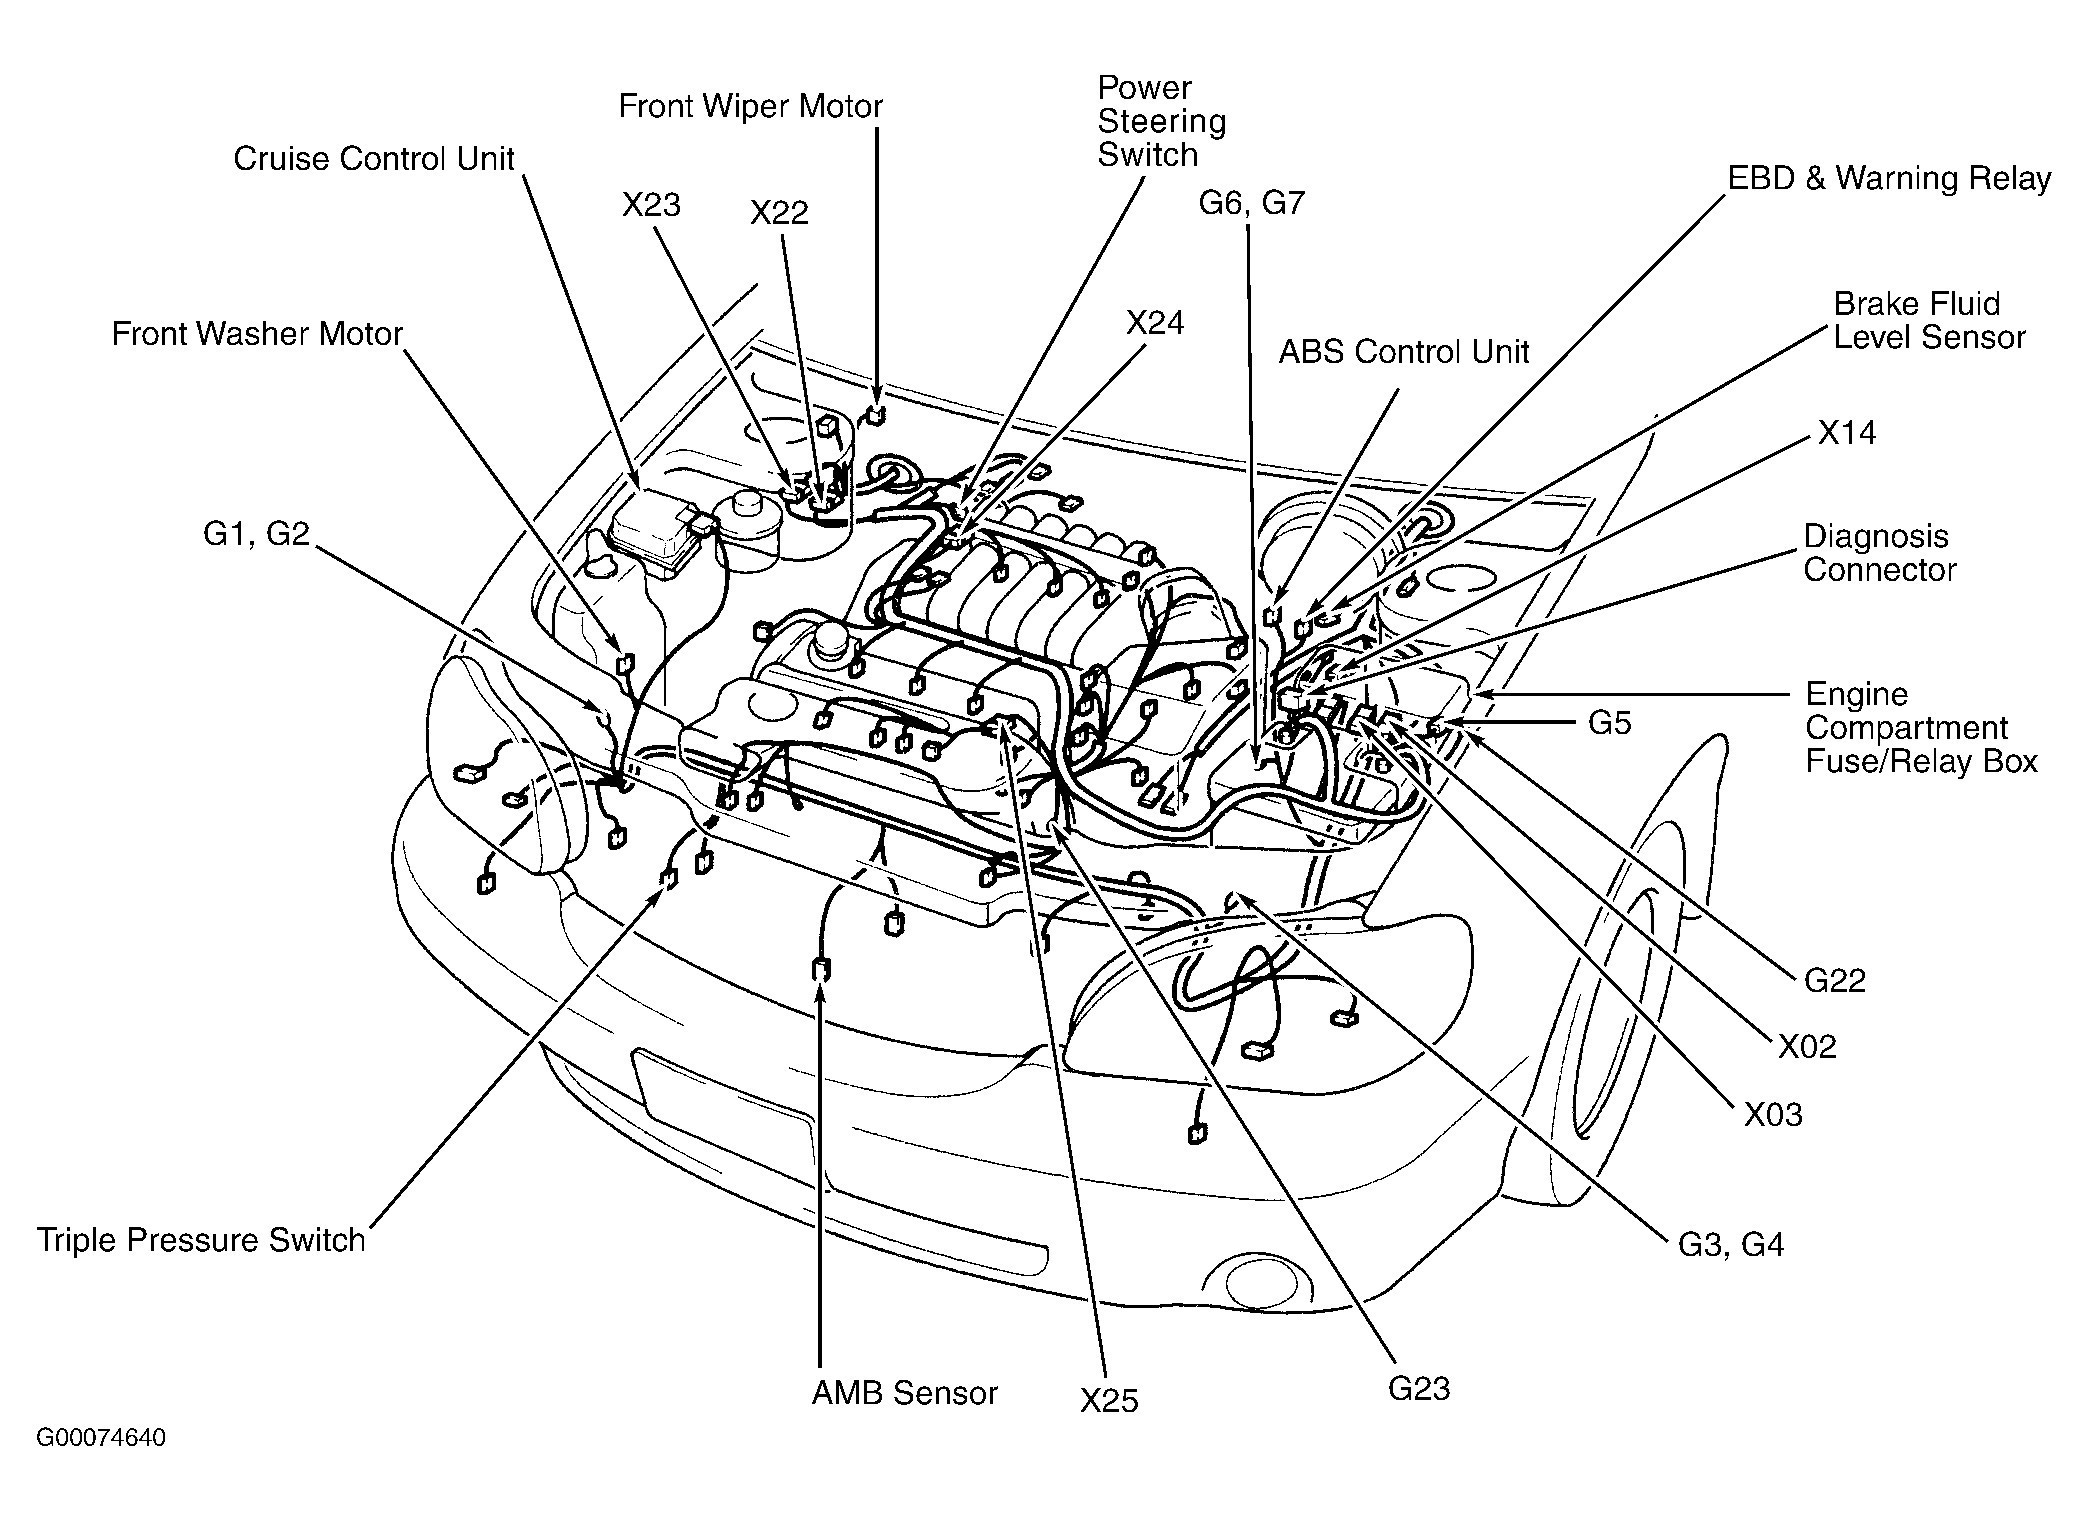 2006 Kia Spectra Parts Diagram | Reviewmotors.co